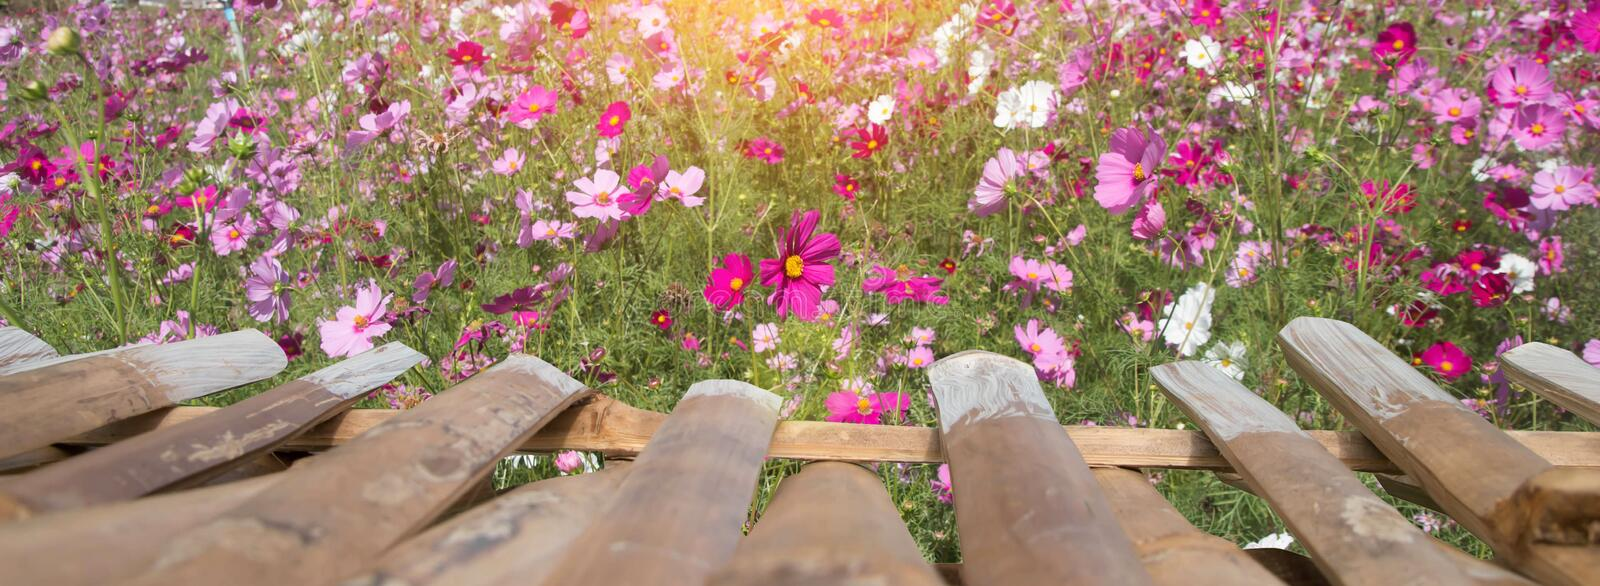 Cosmos Flowers with sunlight royalty free stock image